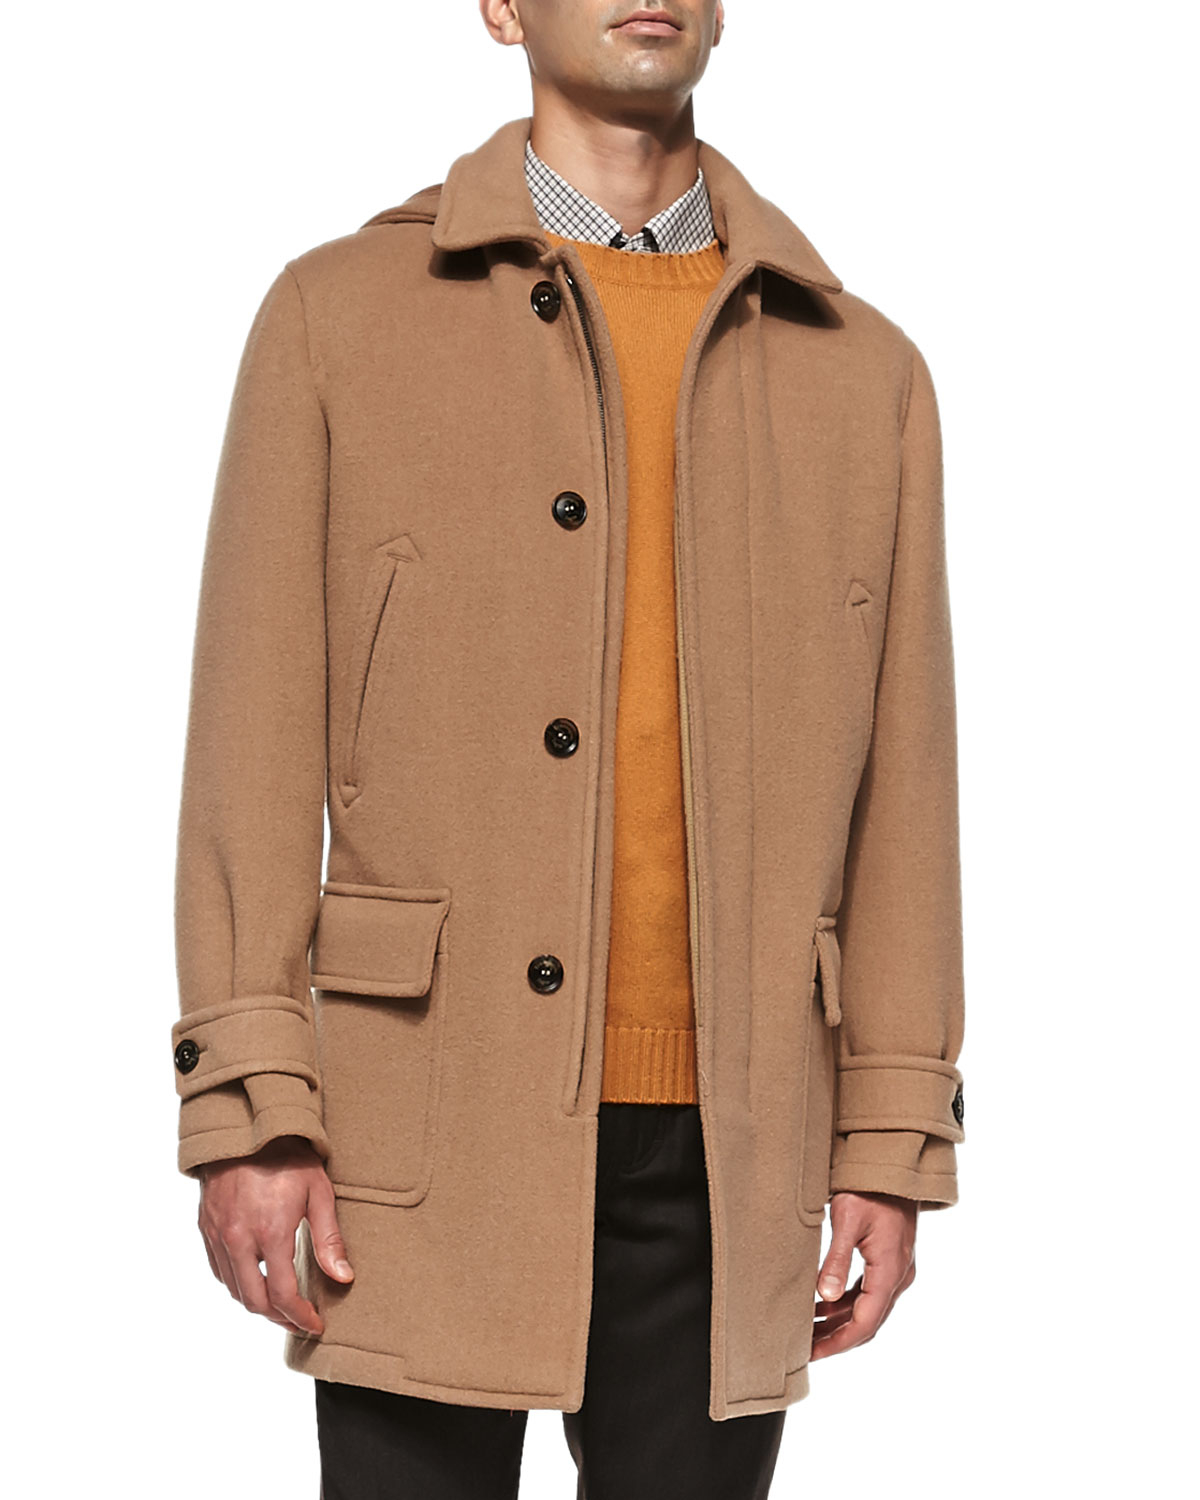 Ermenegildo zegna Wool/cashmere Mac Coat in Brown for Men | Lyst